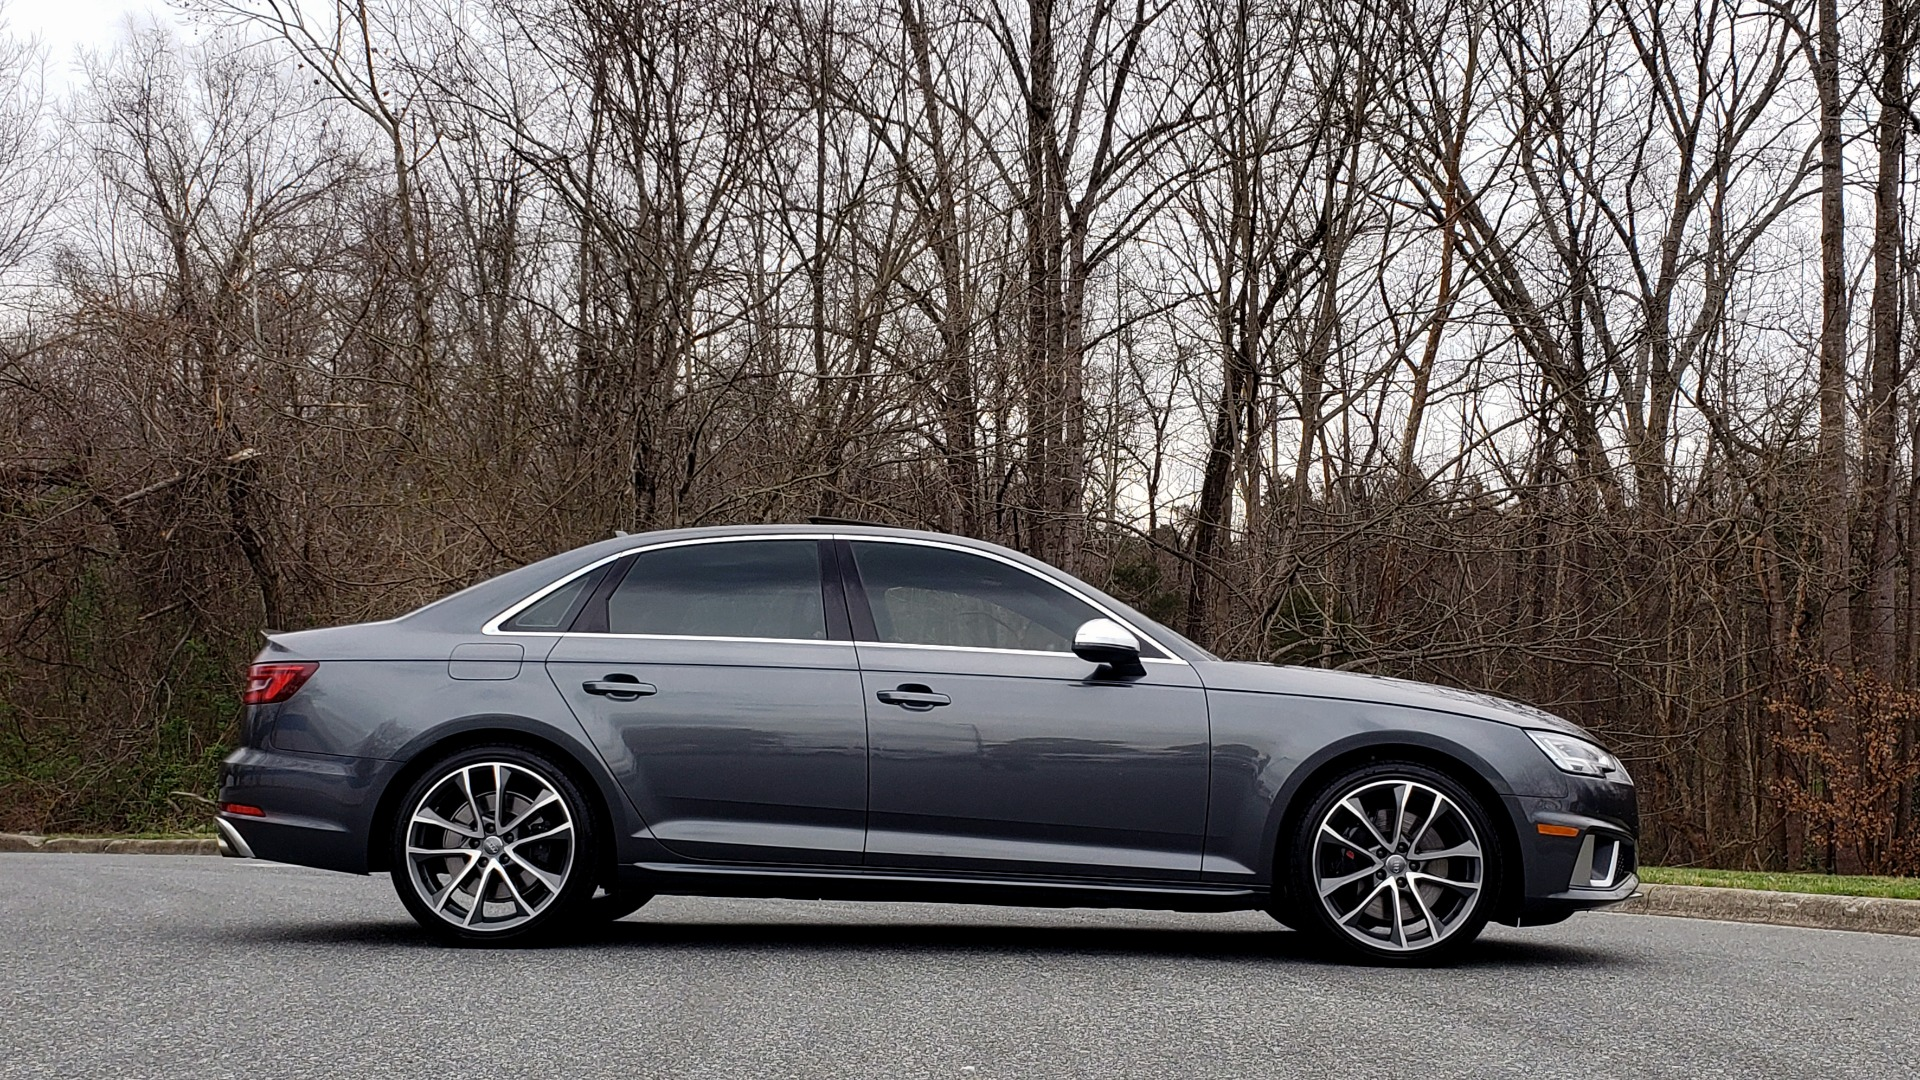 Used 2019 Audi S4 PREMIUM PLUS / AWD / NAV / SUNROOF / B&O SOUND / REARVIEW for sale Sold at Formula Imports in Charlotte NC 28227 5